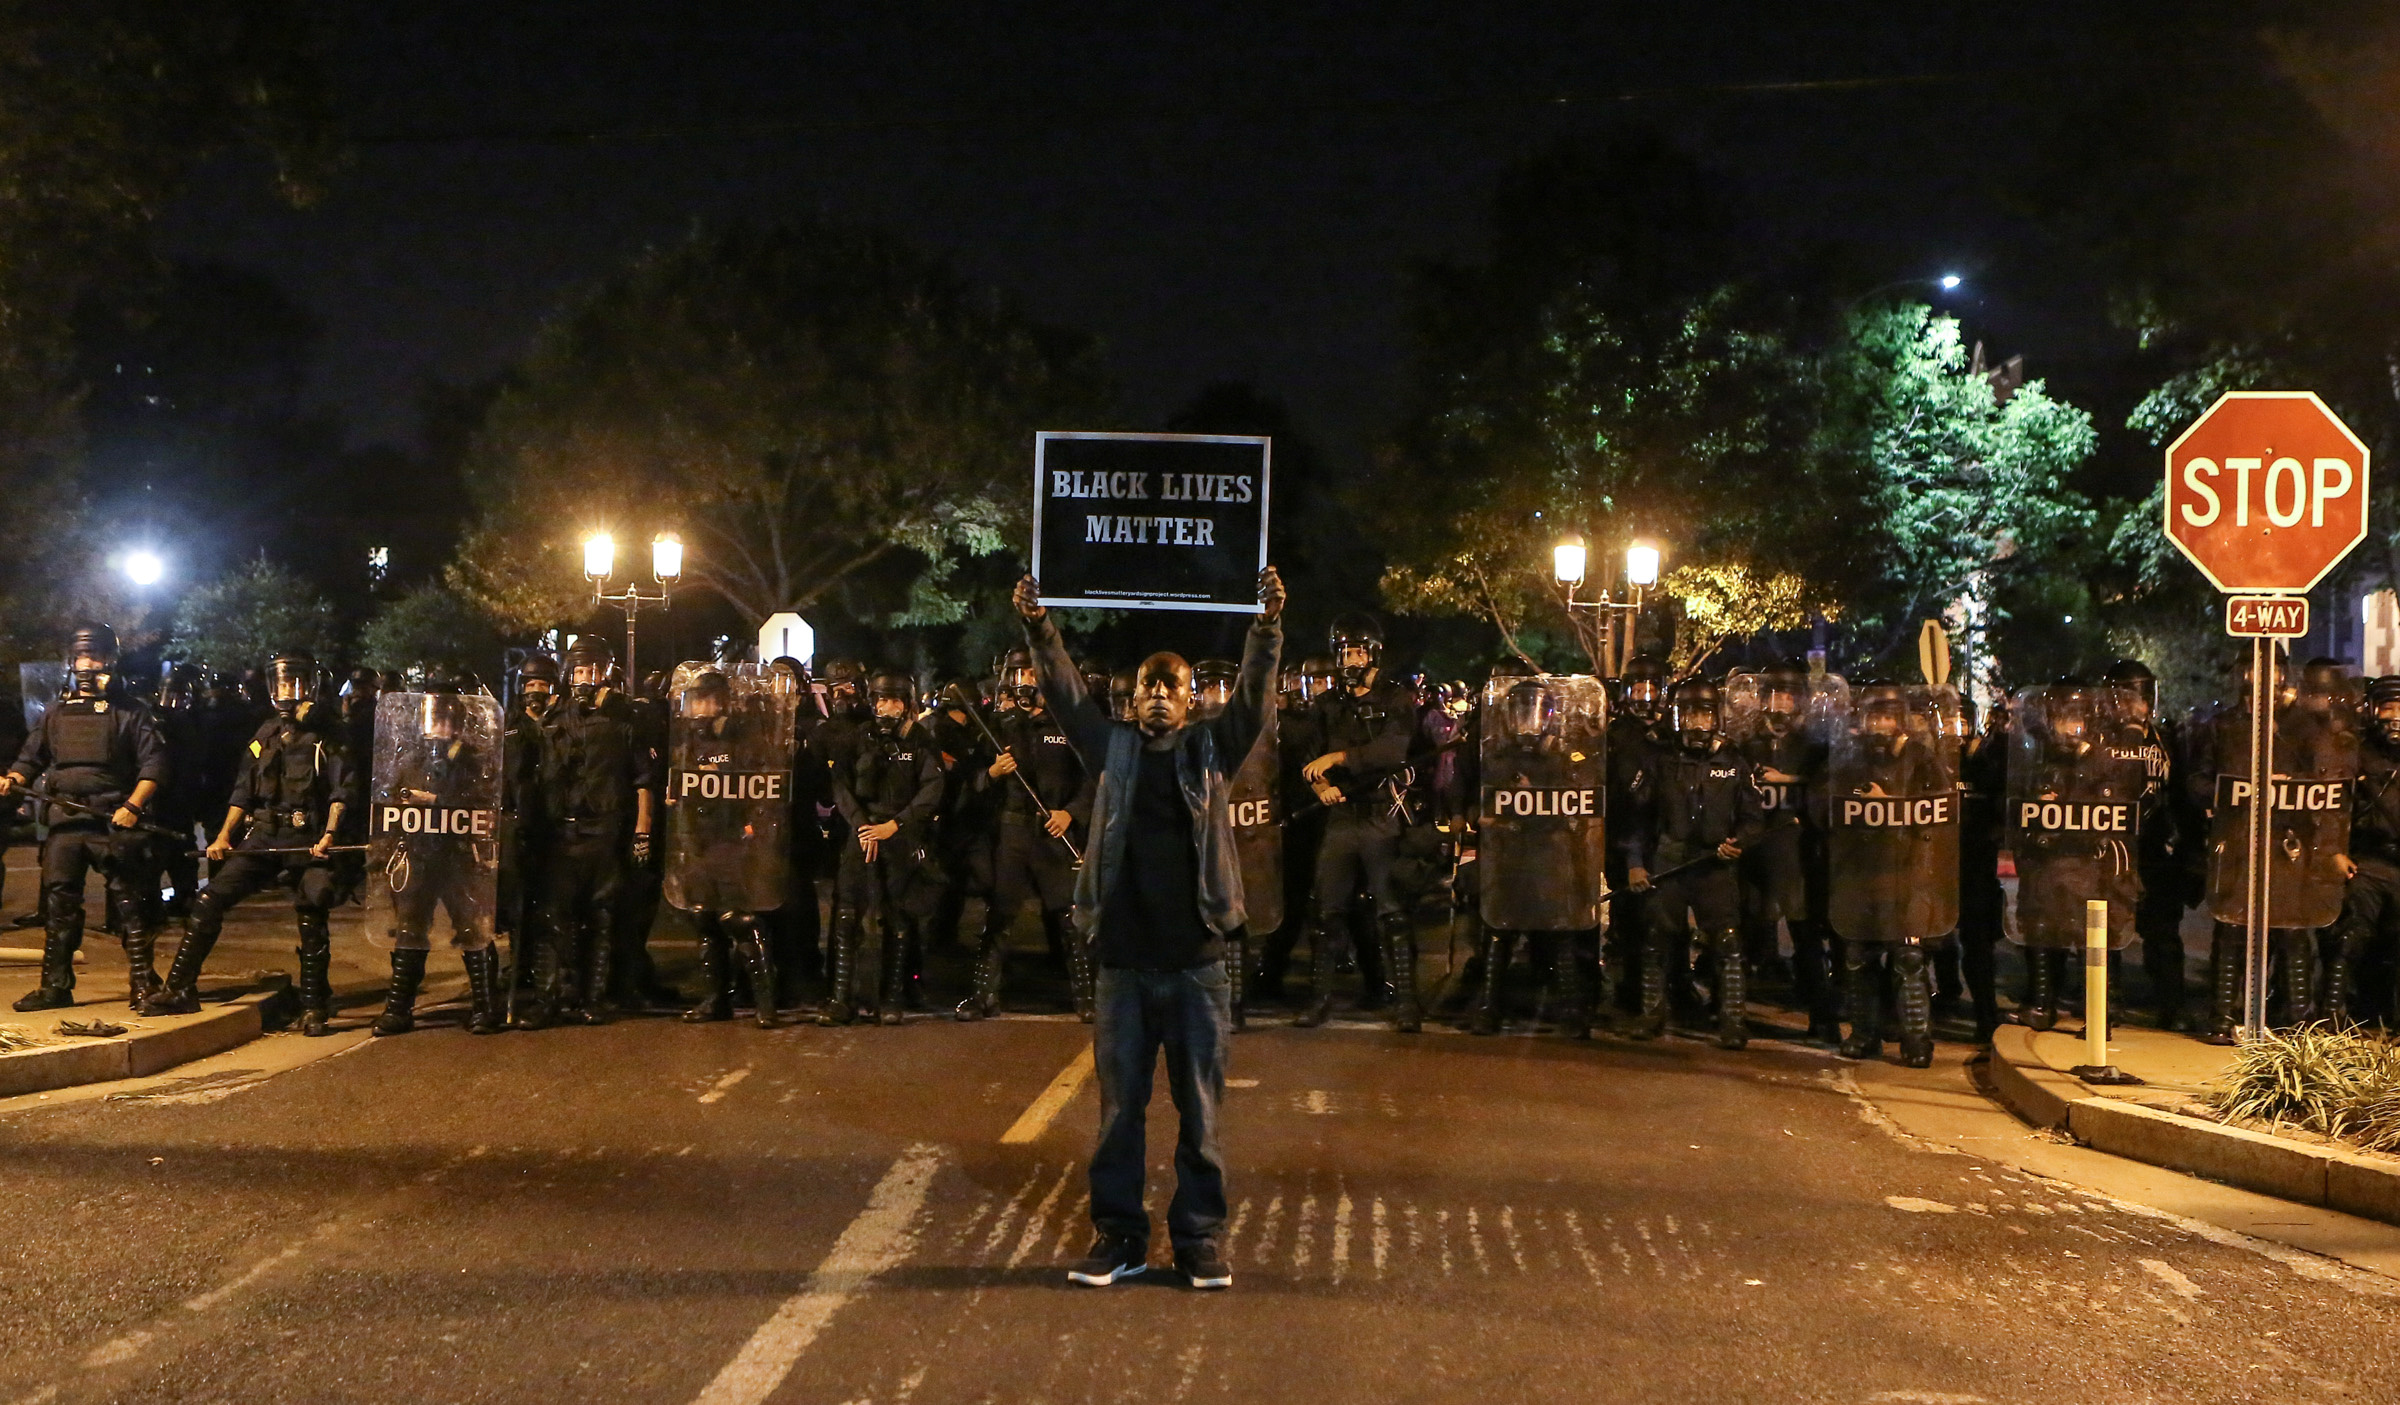 A Black Lives Matter protester stands in front of St. Louis Police Department officers equipped with riot gear in St. Louis